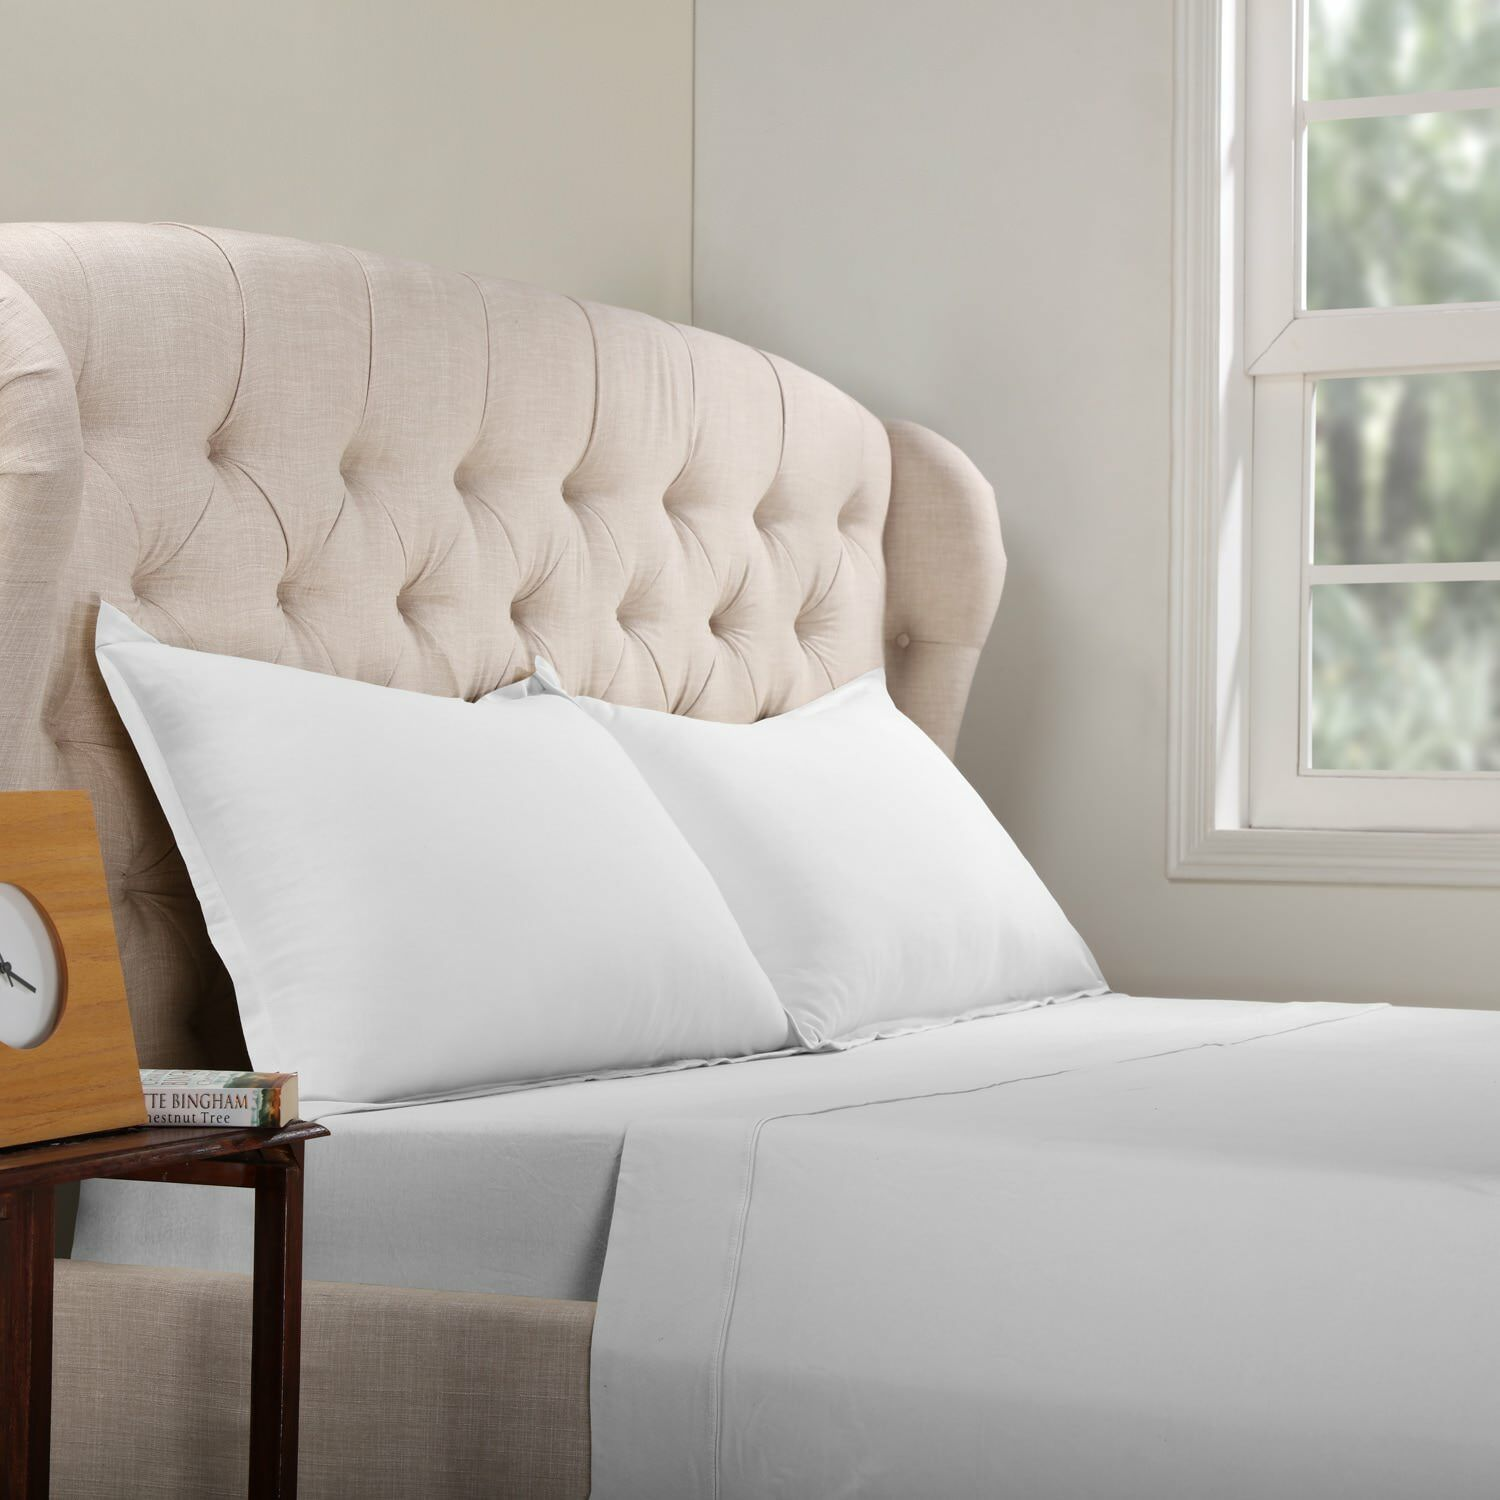 Geoffrey 100% Cotton Jersey Bed Sheet Set Color: White, Size: Twin